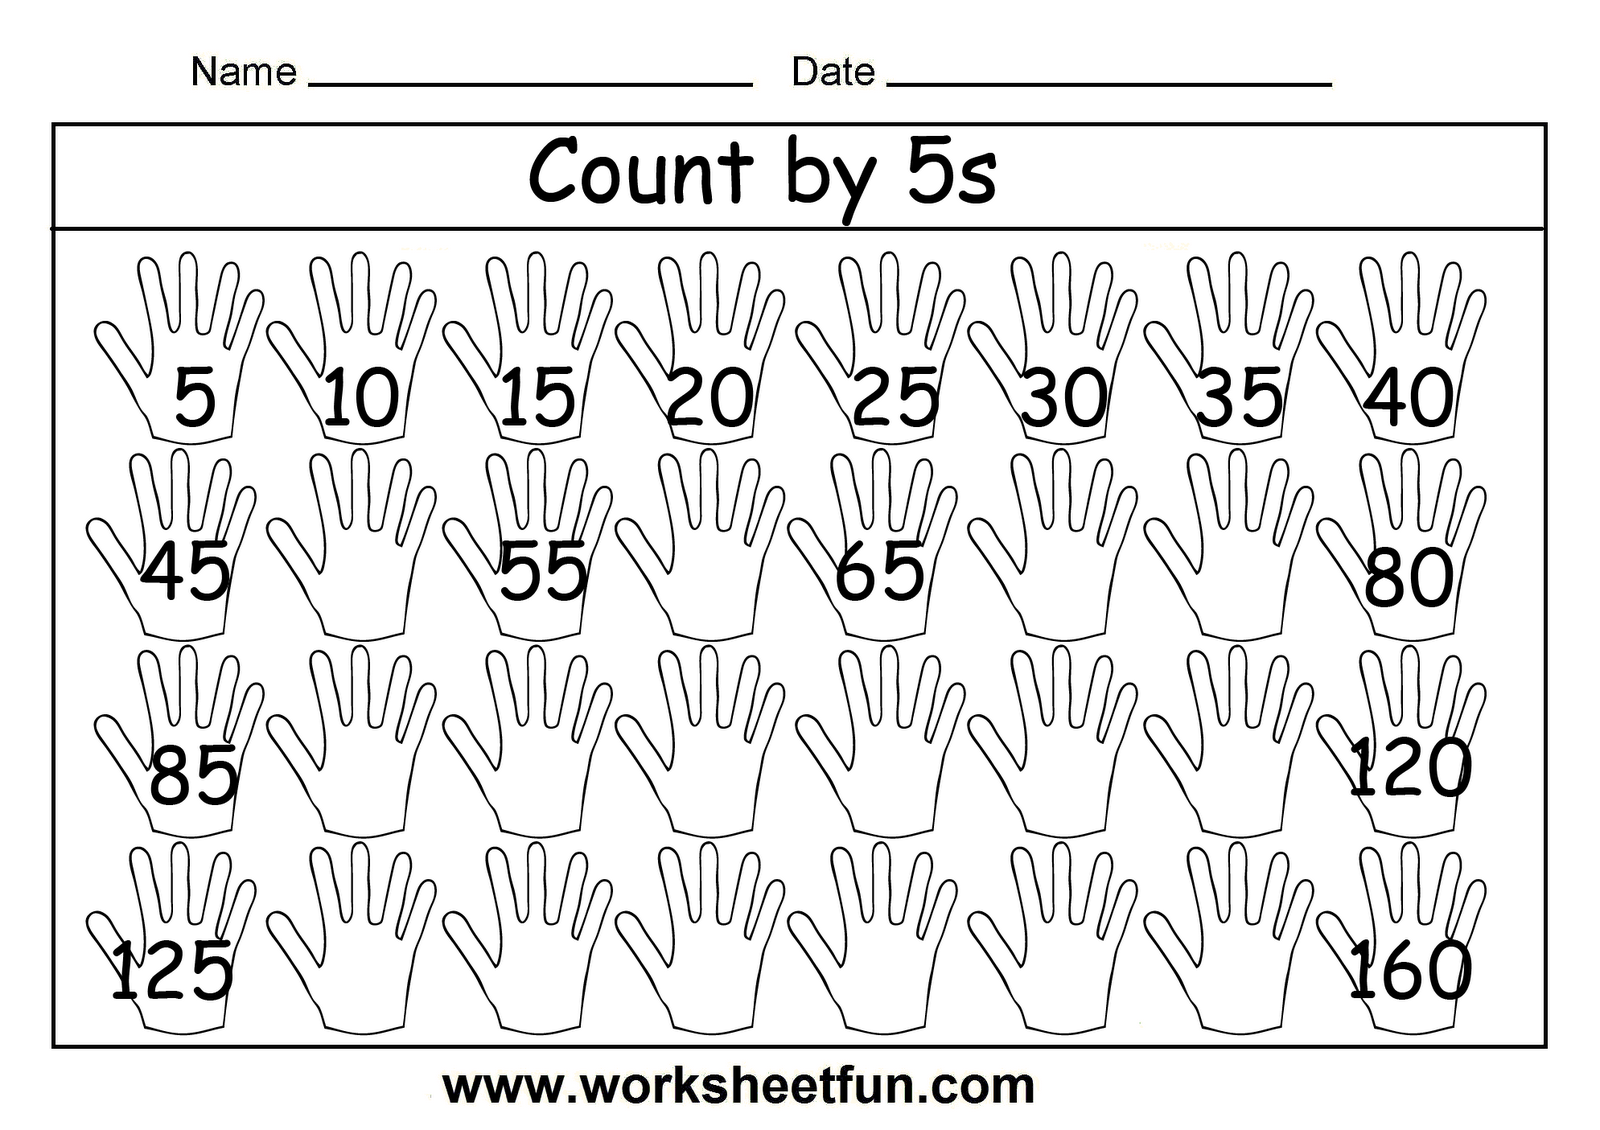 worksheet Counting To 100 Worksheet 1000 images about math counting on pinterest count skip and common cores